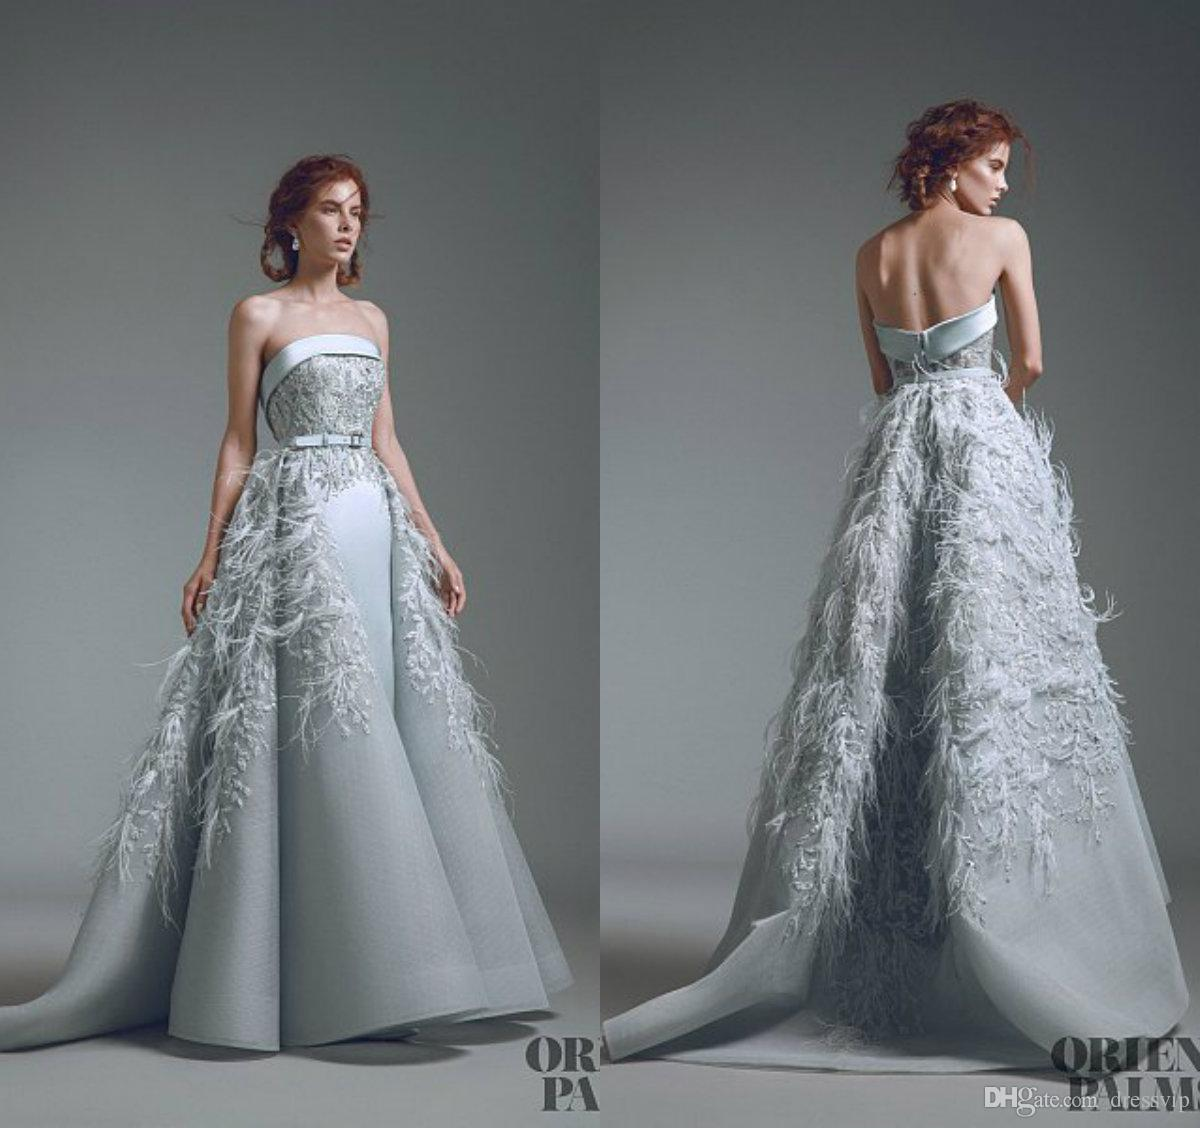 Elegant Evening Formal Dresses 2018 With Detachable Skirt Feather Lace Appliques Beaded Prom Dress Custom Made Mermaid Evening Gowns